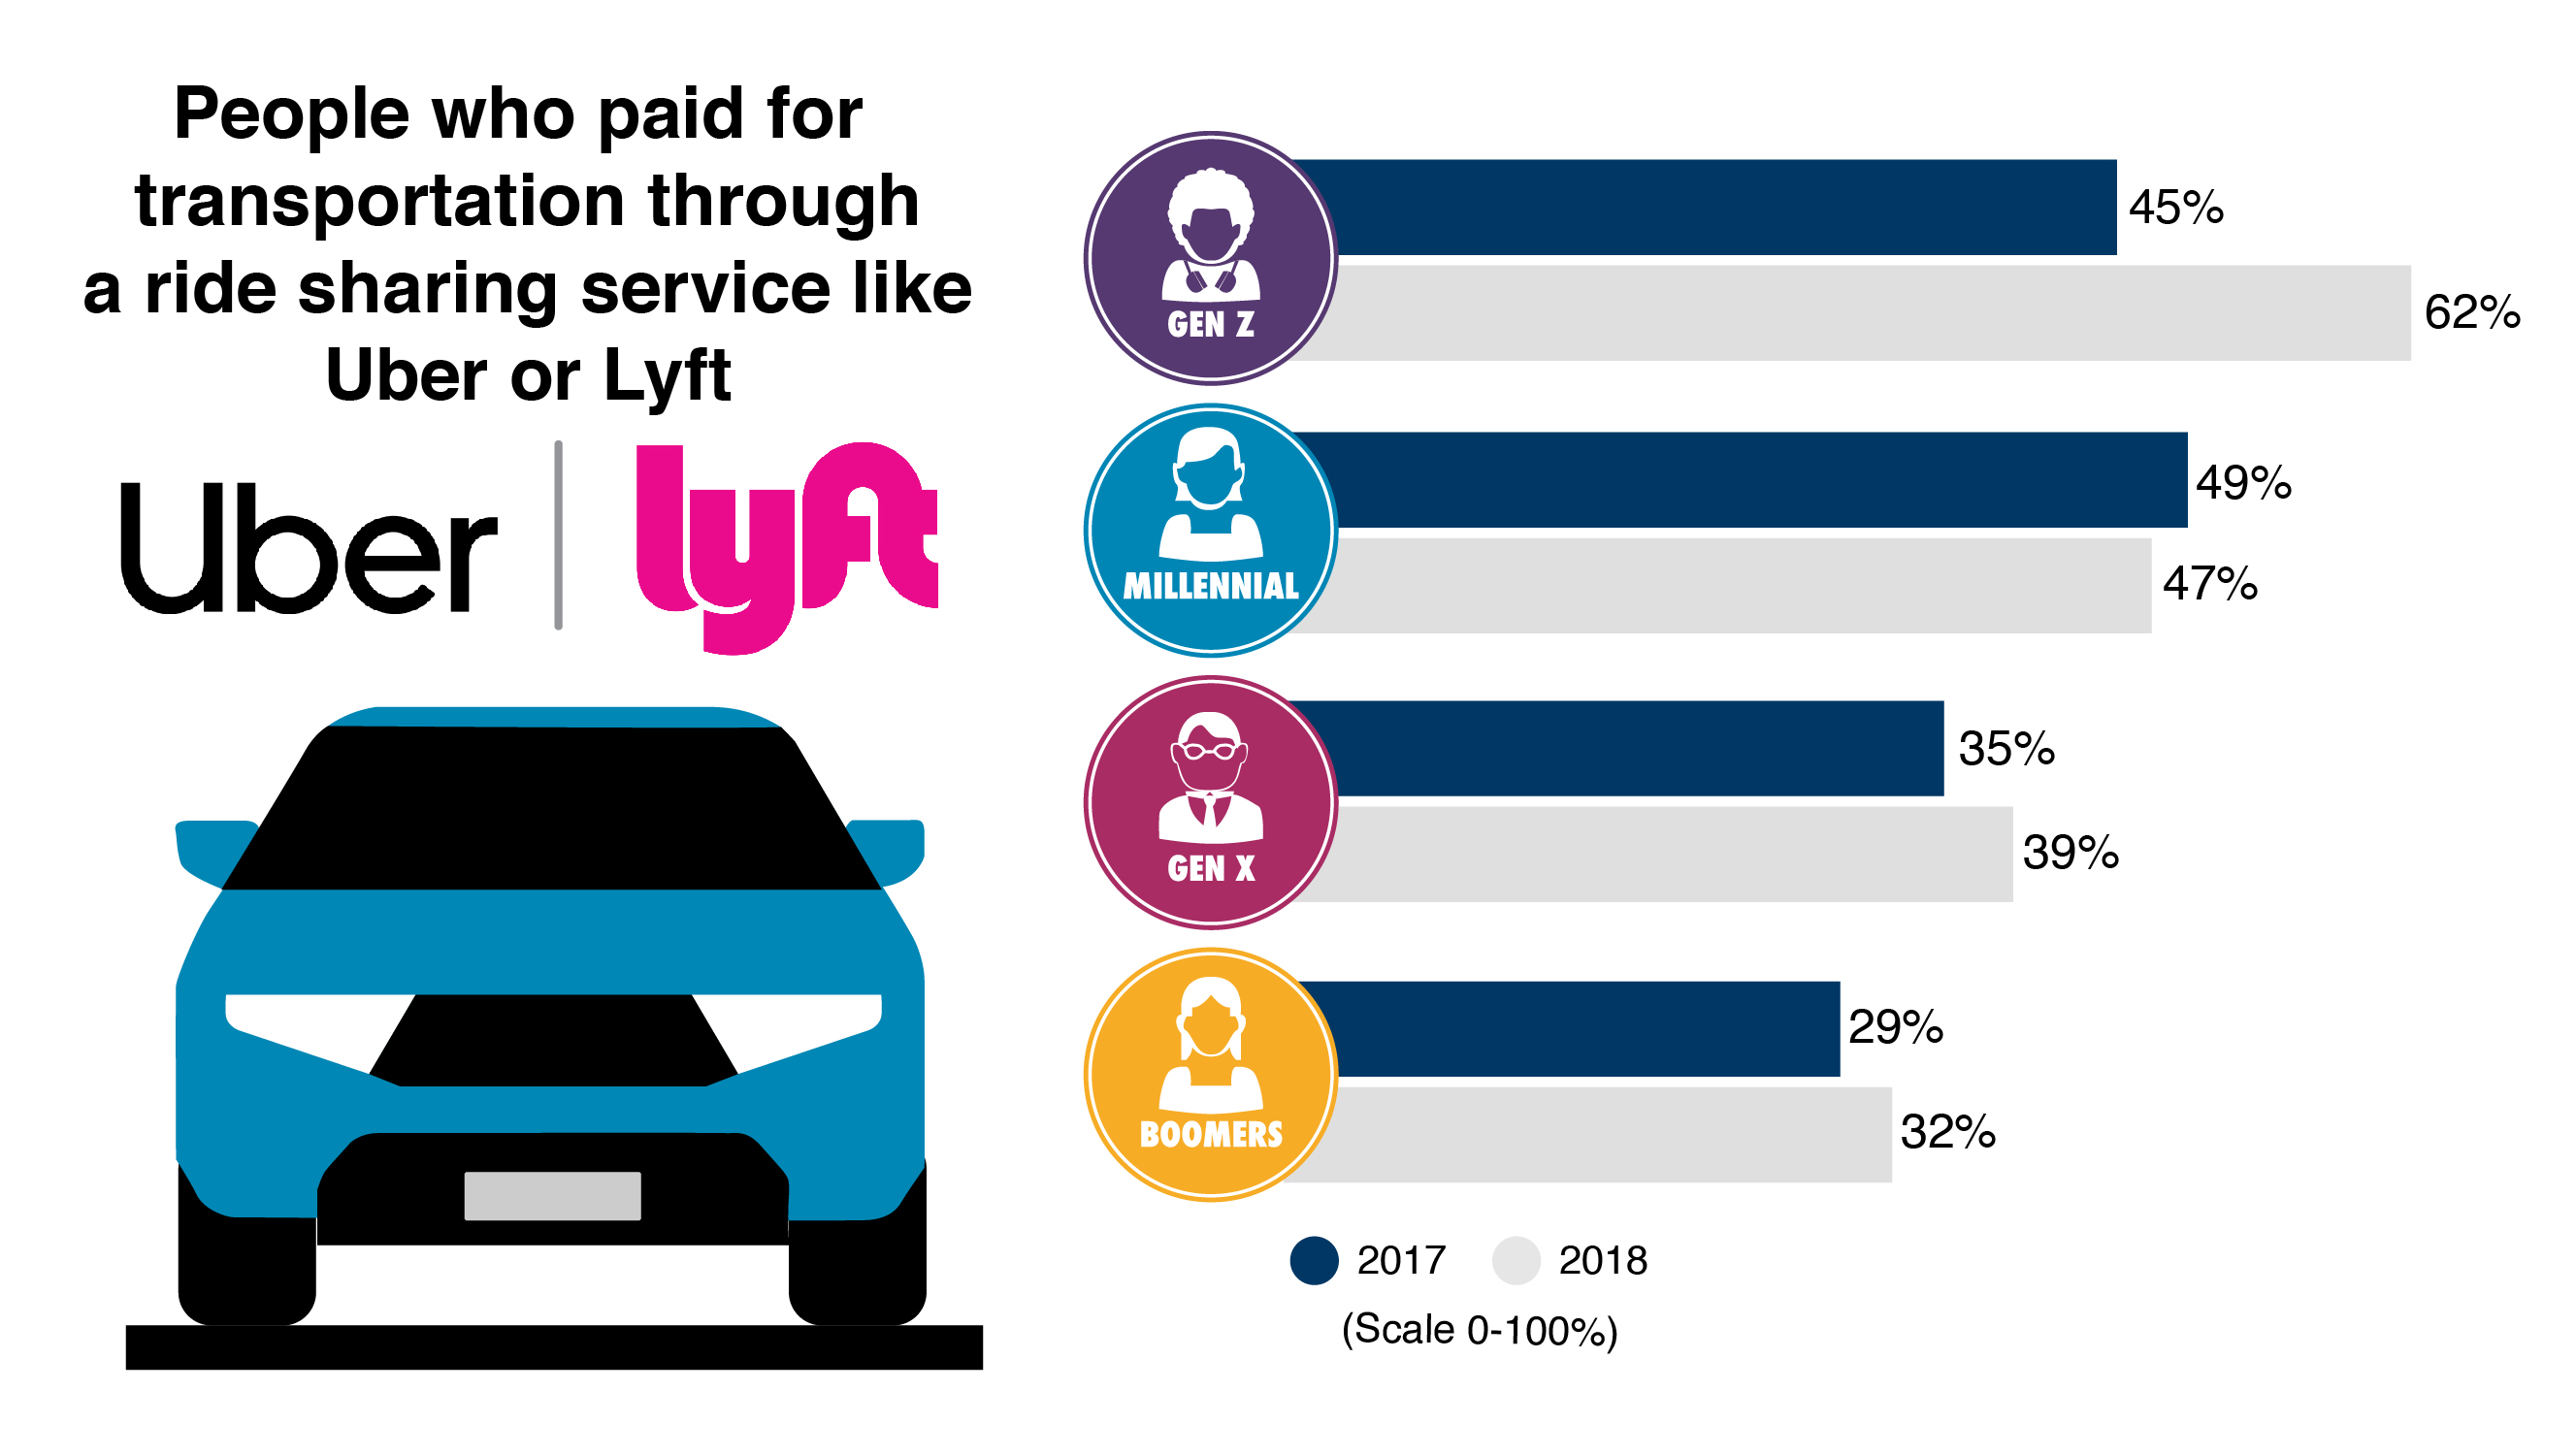 People who paid for transportation through a ridesharing service such as Uber or Lyft